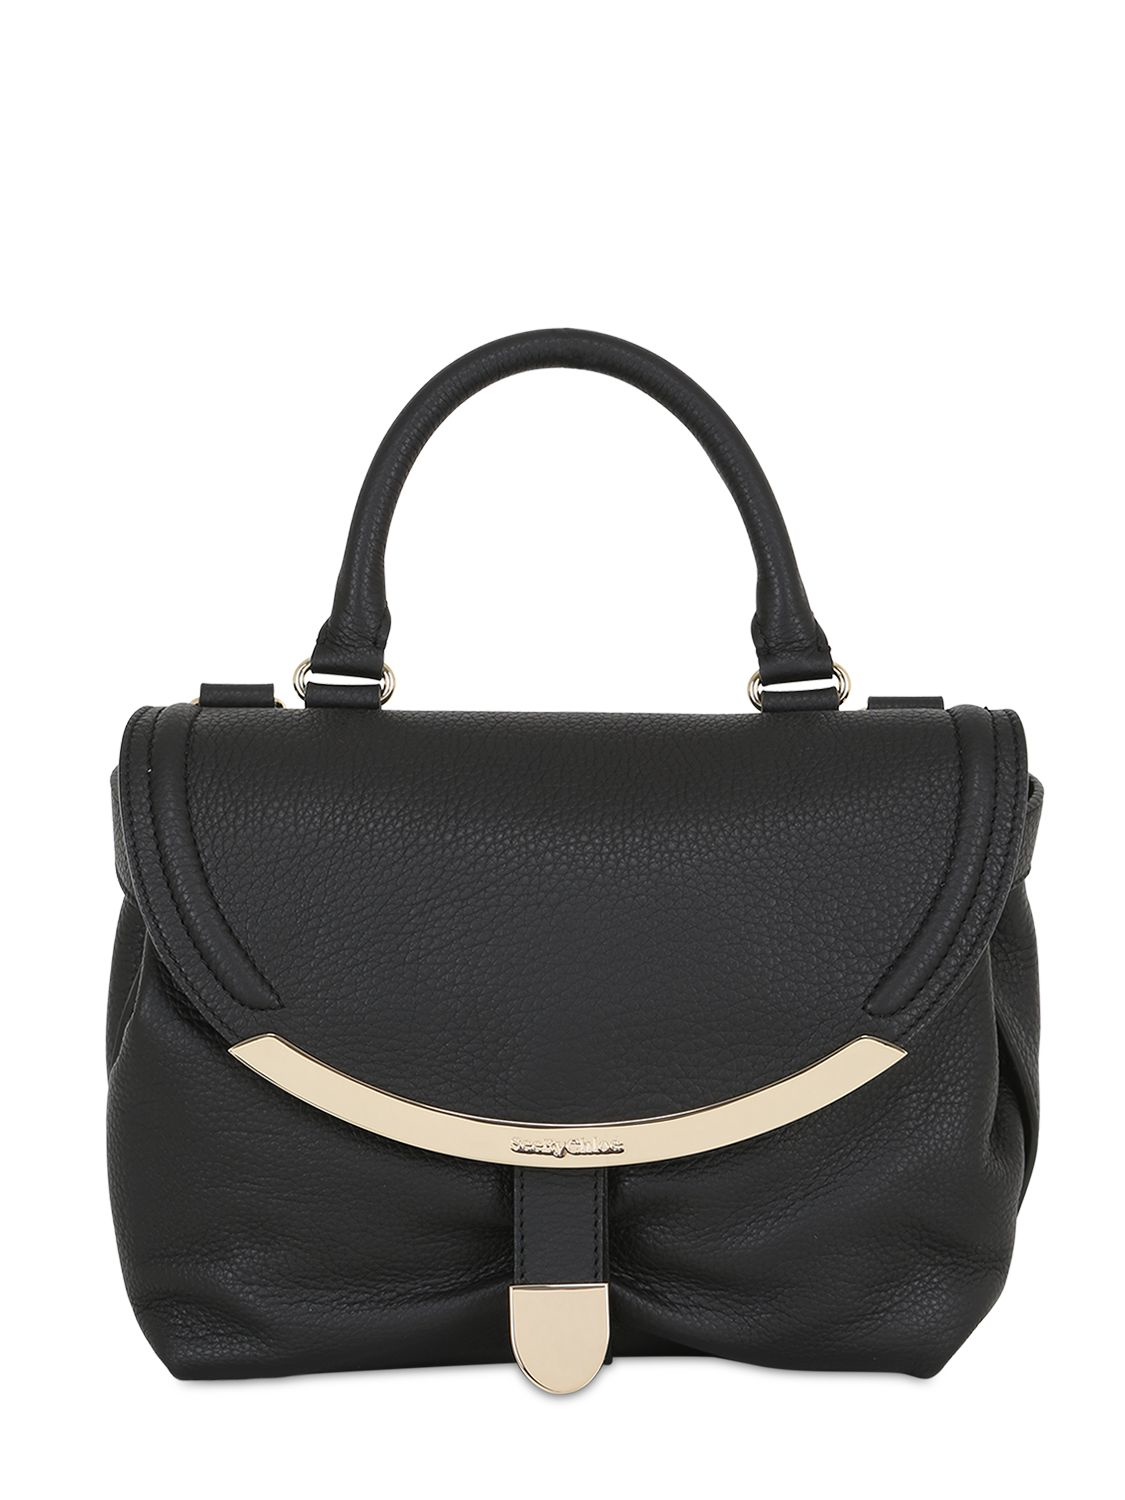 See By Chlo 233 Lizzie Grained Leather Shoulder Bag In Black